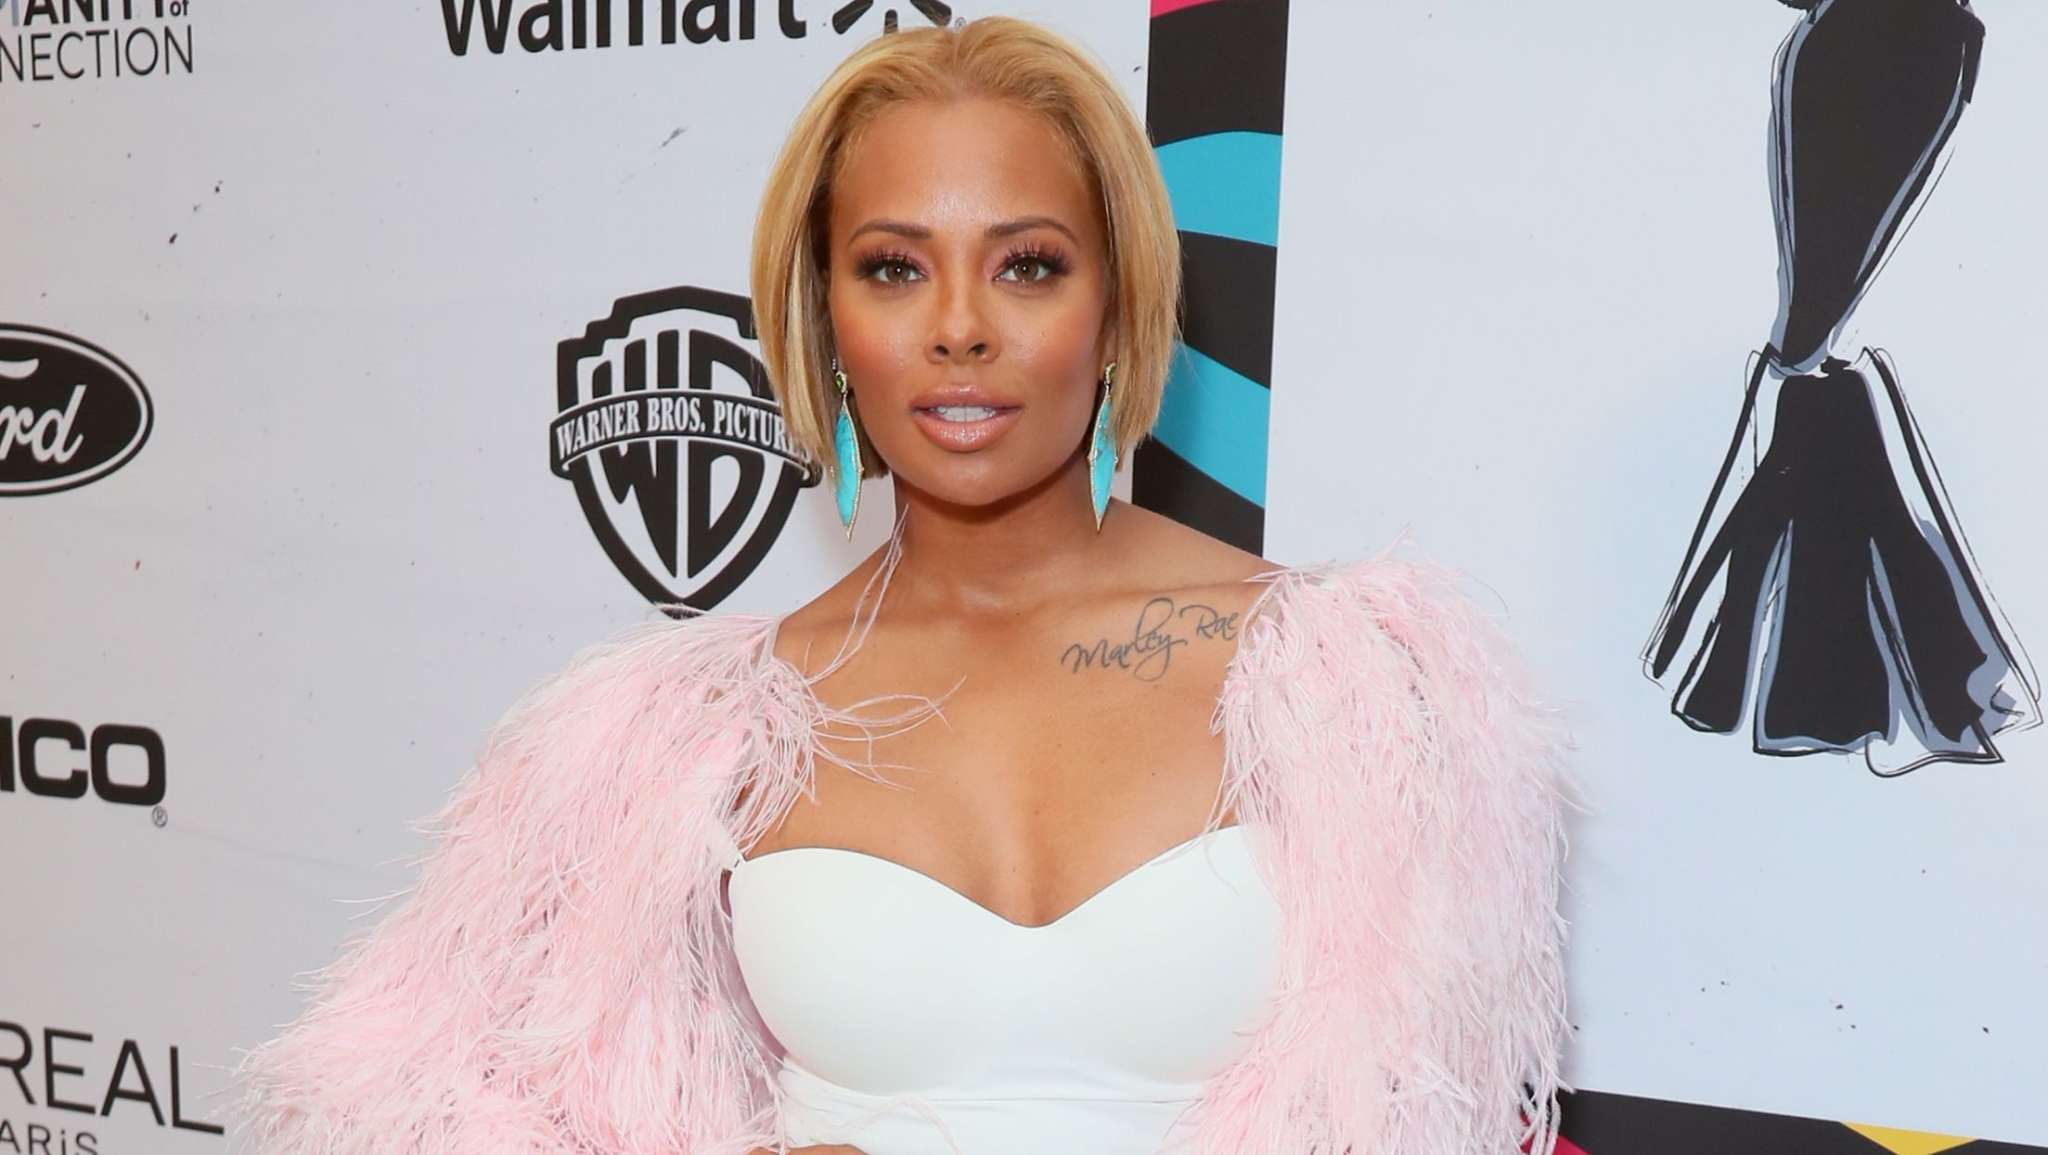 eva-marcille-amazes-fans-with-throwback-photos-since-she-was-pregnant